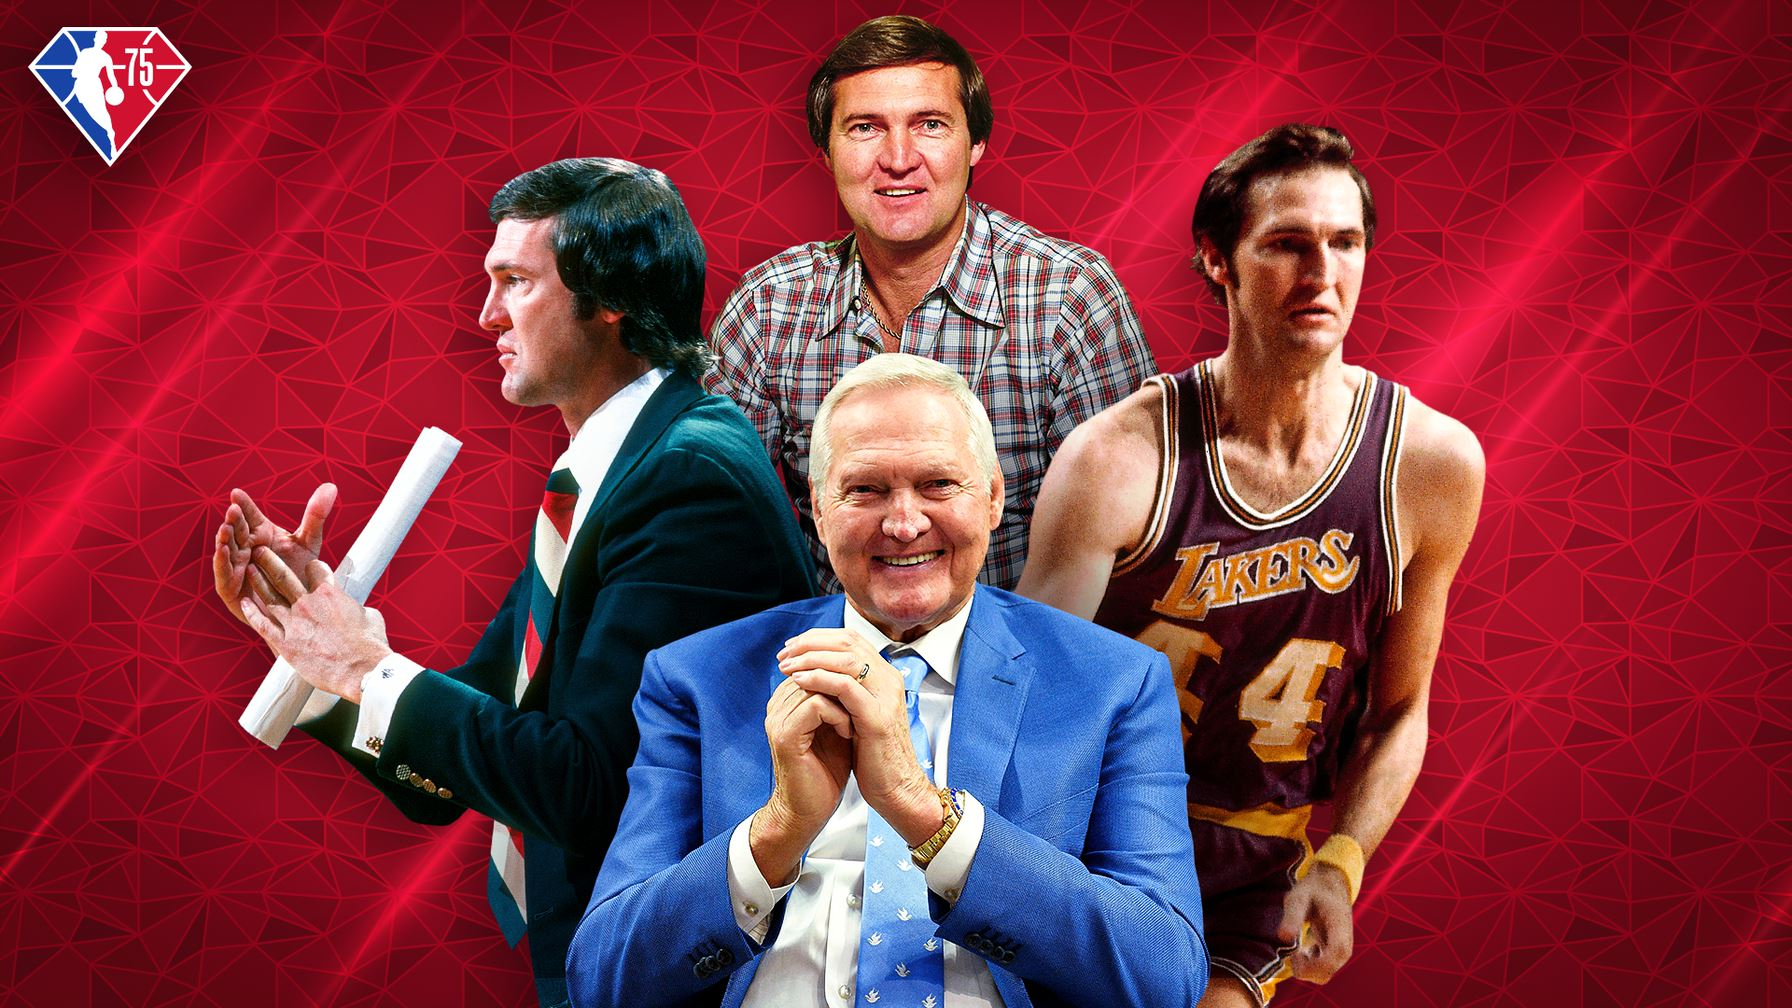 Jerry West's lifelong pursuit for love and respect